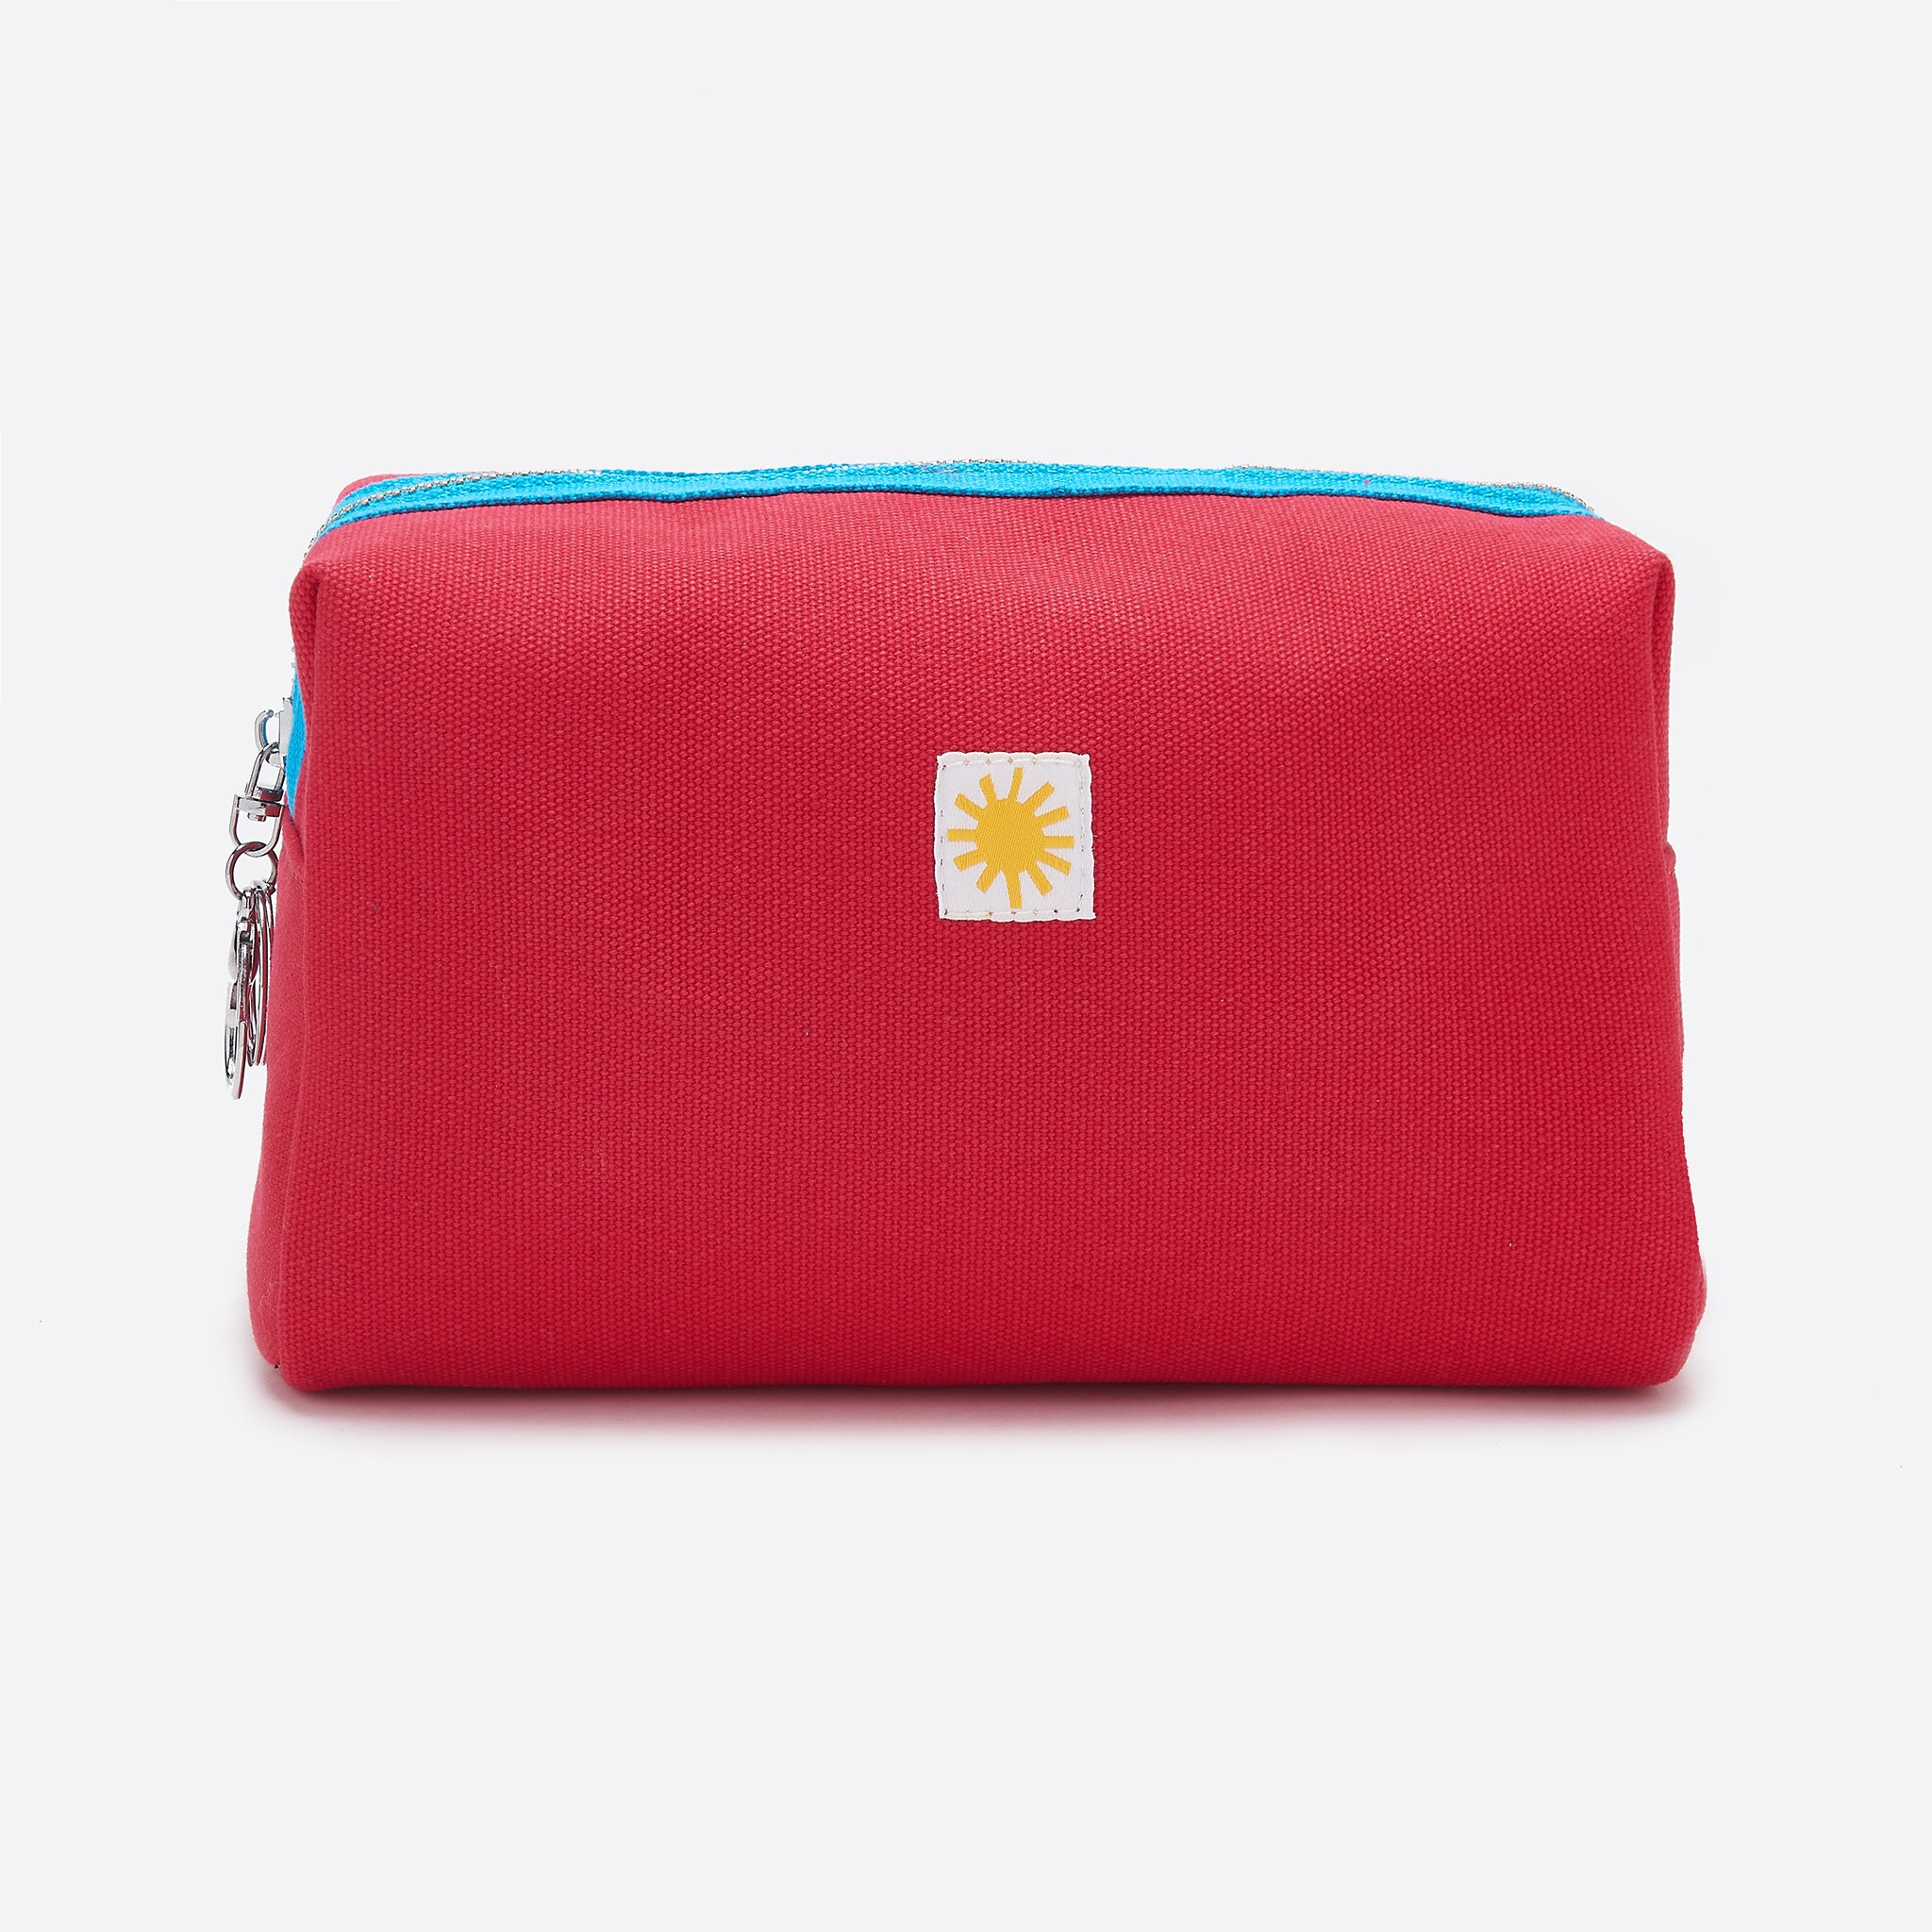 LF Markey Canvas Toiletry Bag in Red